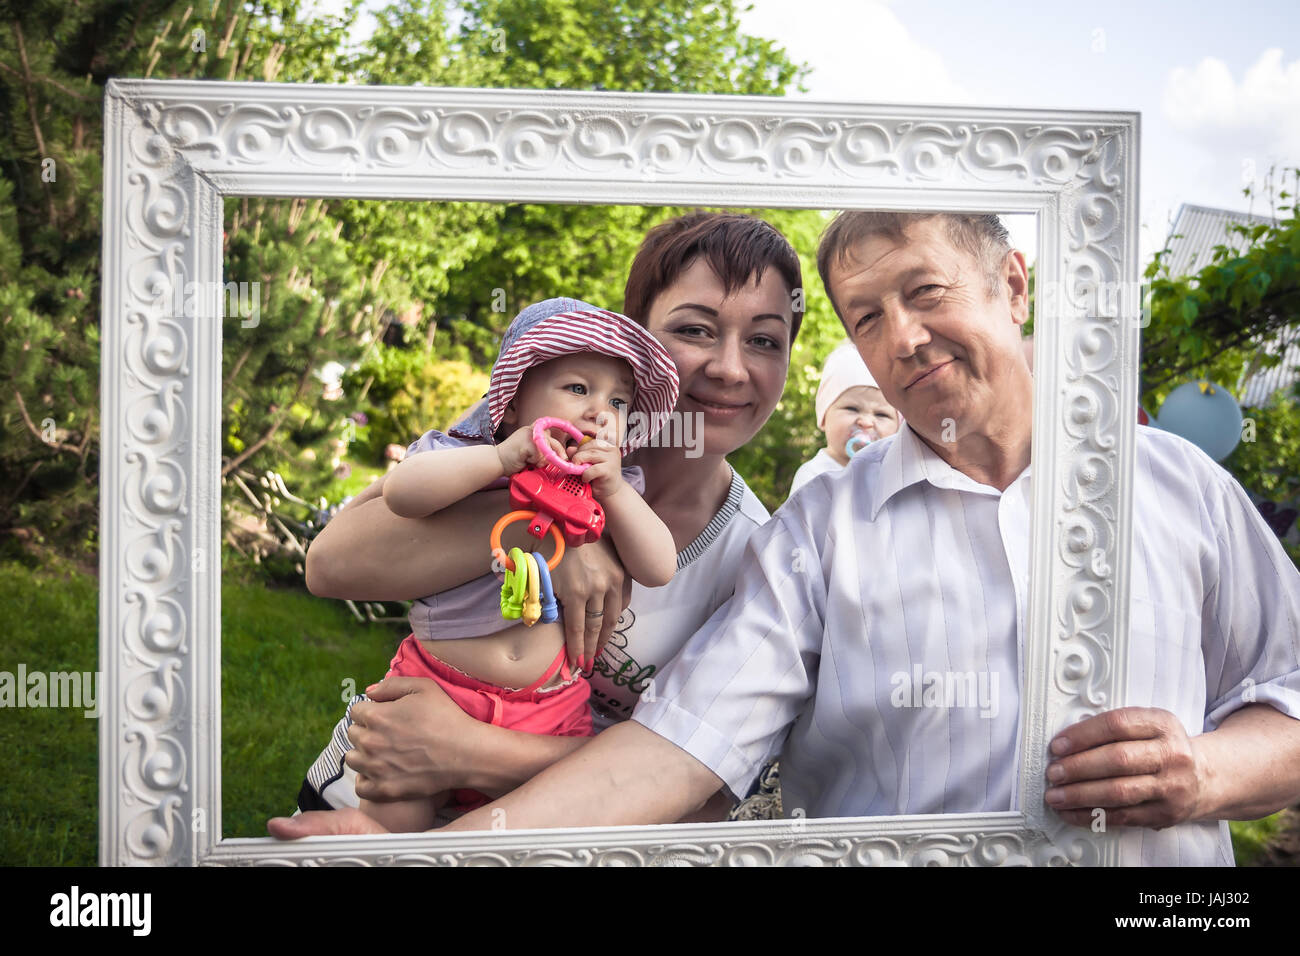 Happy family portrait of cheerful grandfather with his daughter and grandchild during outdoors party - Stock Image